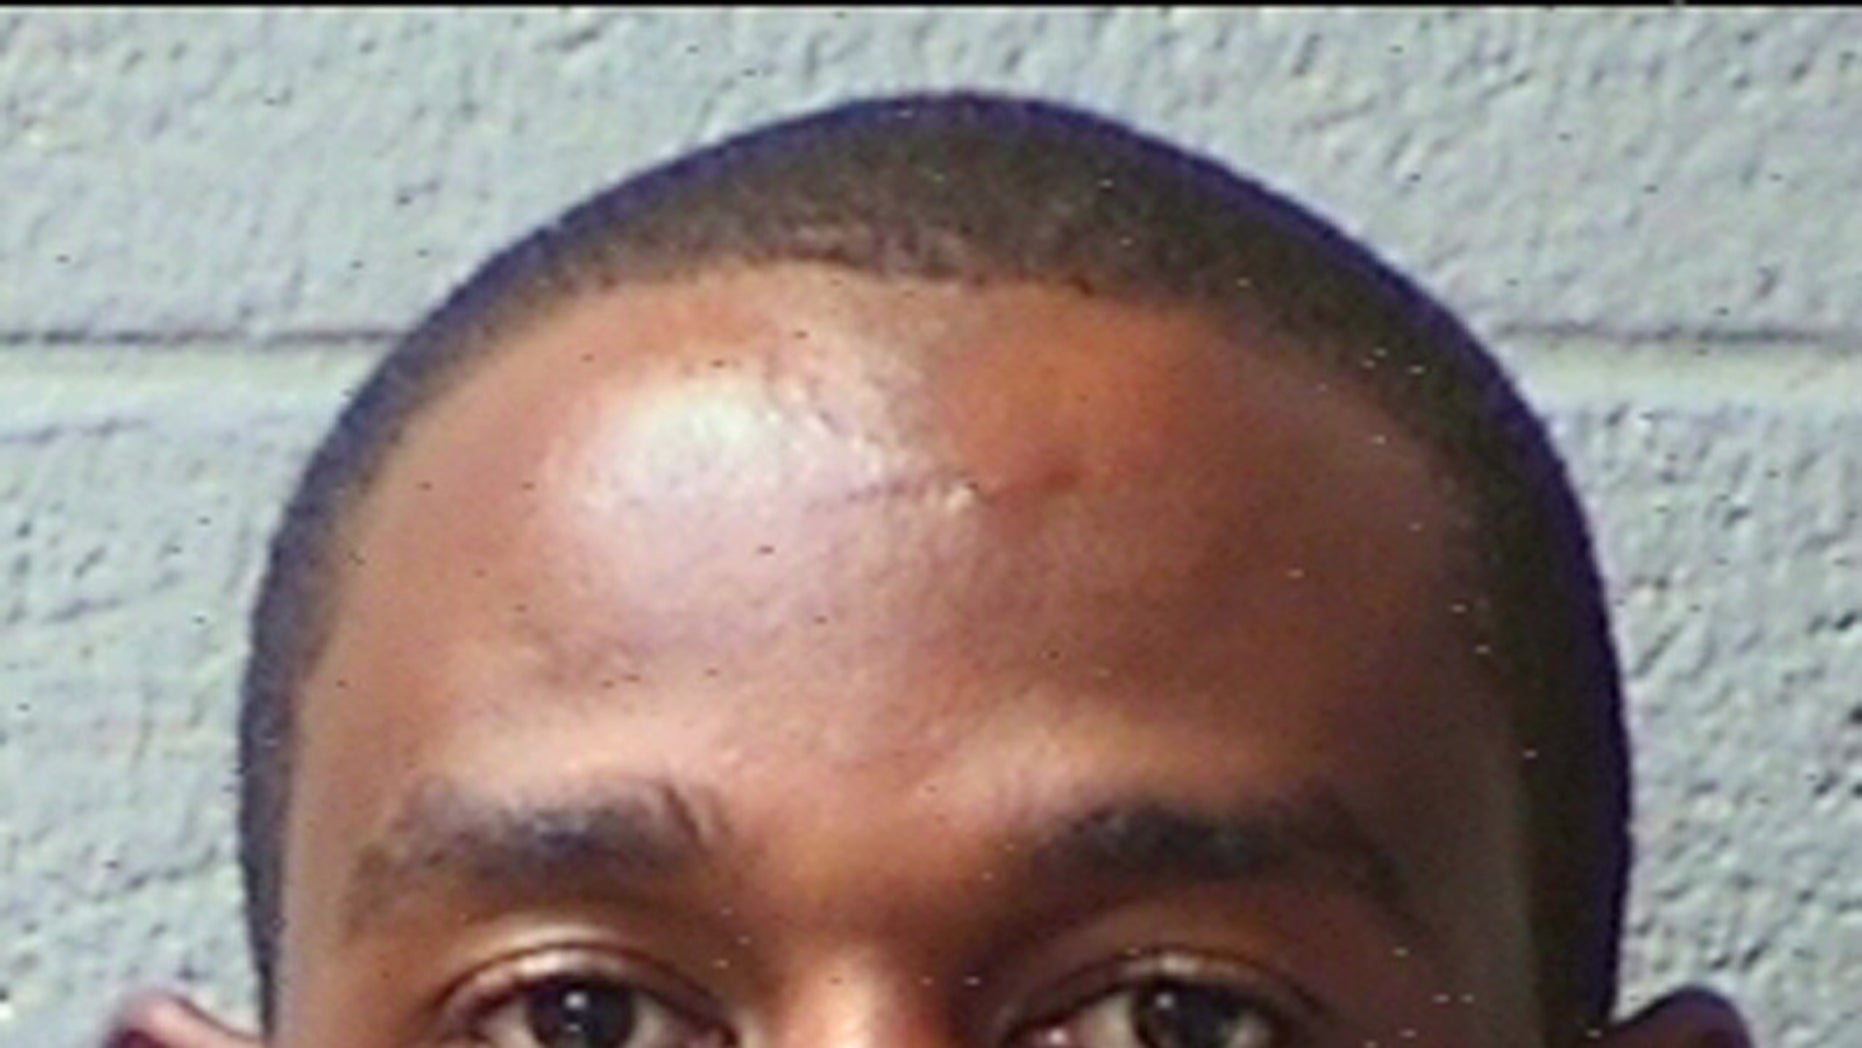 This arrest photo made available by Orange County, S.C., Jail, on Wednesday, July 20, 2016, shows former South Carolina sheriff's deputy Dereck Johnson, 35, who was charged with felony misconduct in office. According to documents Johnson forced a woman to perform a sex act by threatening to arrest her boyfriend if she did't comply. After the allegation surfaced last month, Orangeburg County Sheriff Leroy Ravenell quickly fired Johnson and asked state police to investigate. (Orange County Jail via AP)